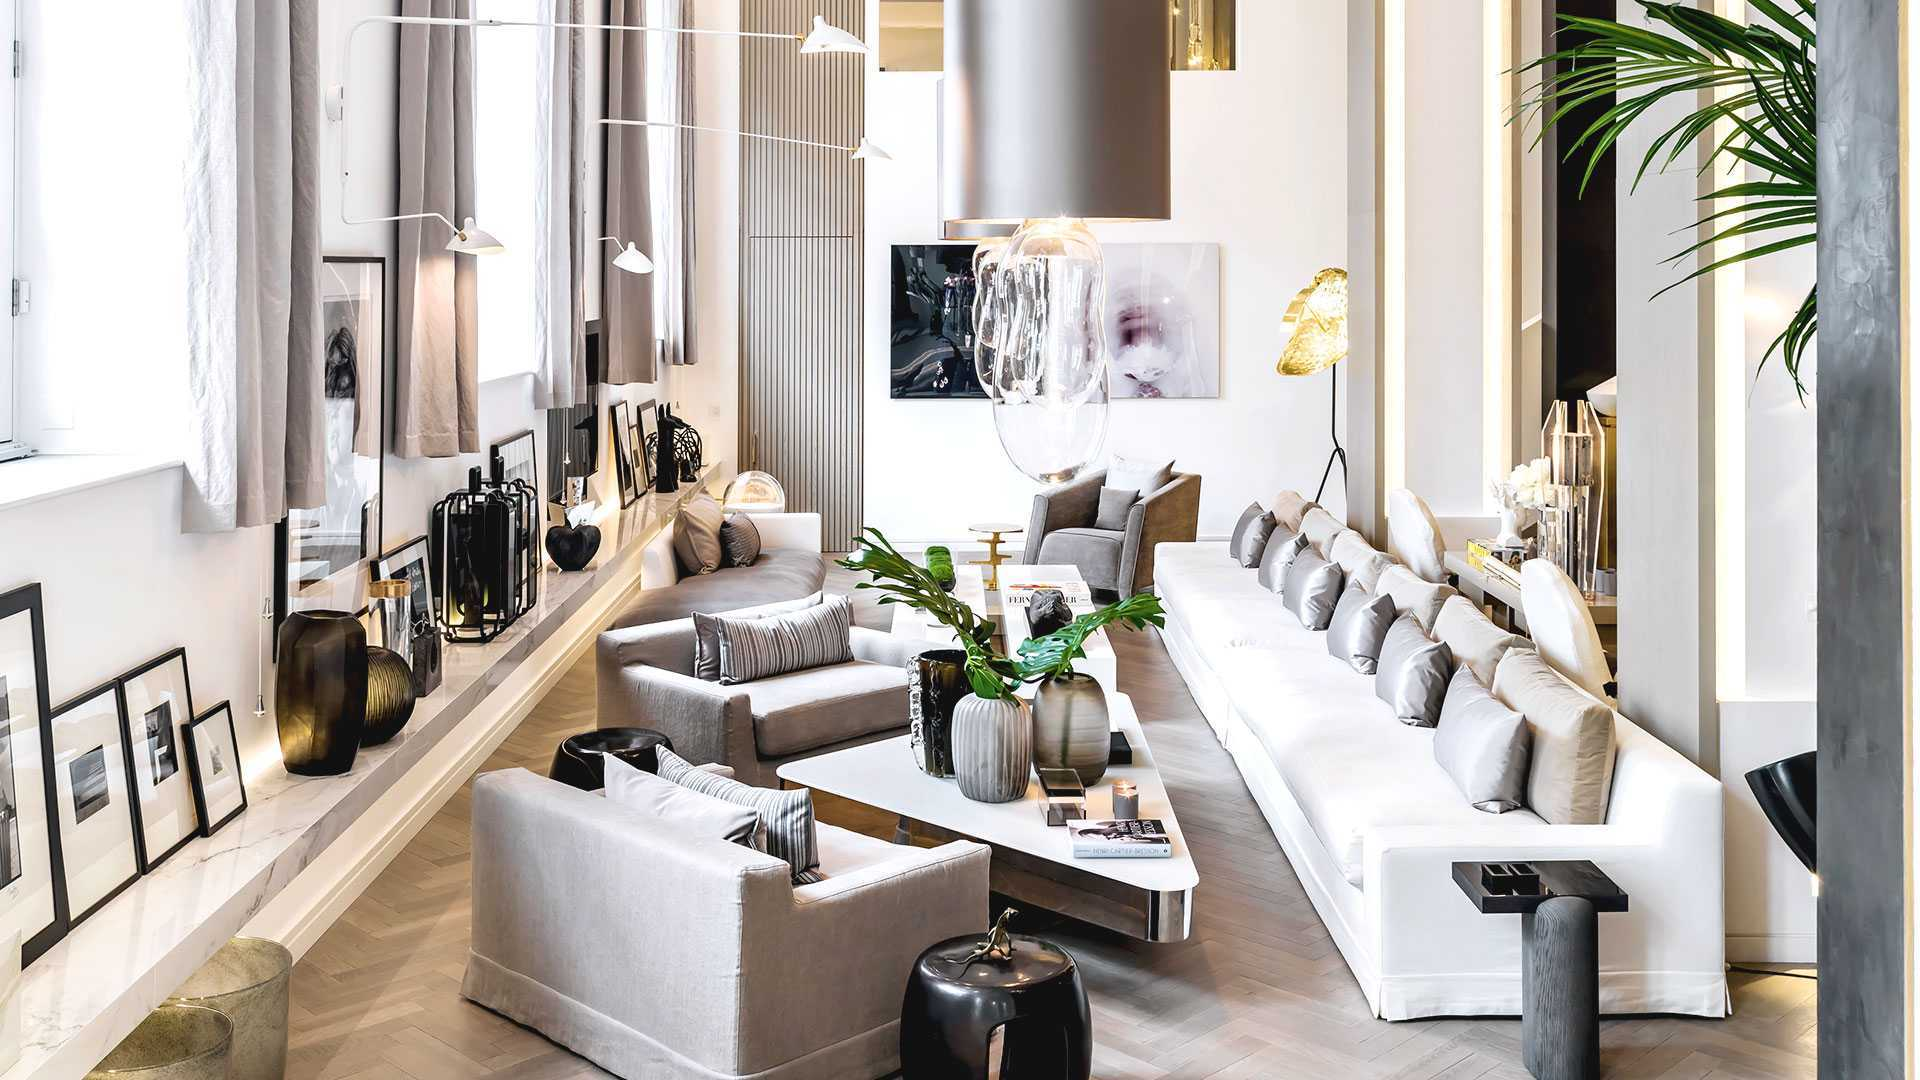 interior design pictures of living rooms in india paint colors for room walls with light furniture kelly hoppen's london home is a sanctuary tranquility ...